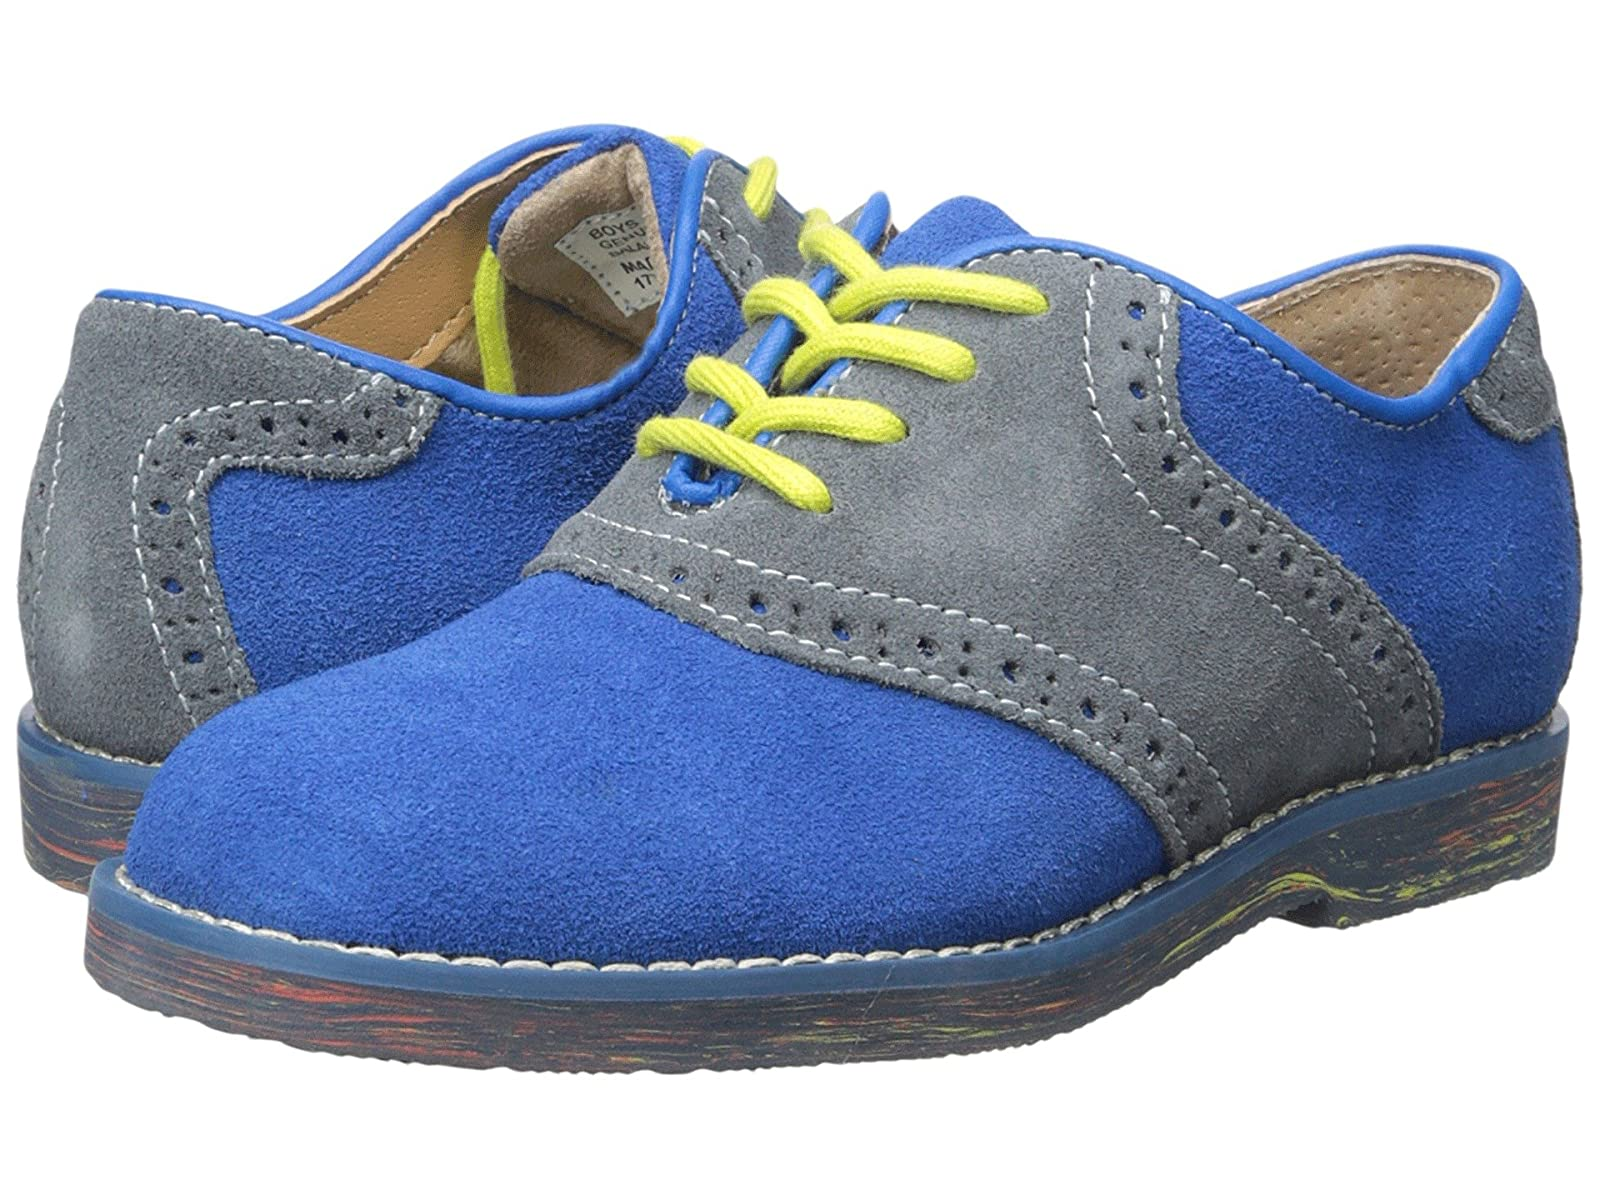 Florsheim Kids Kennett Jr. II (Toddler/Little Kid/Big Kid)Atmospheric grades have affordable shoes